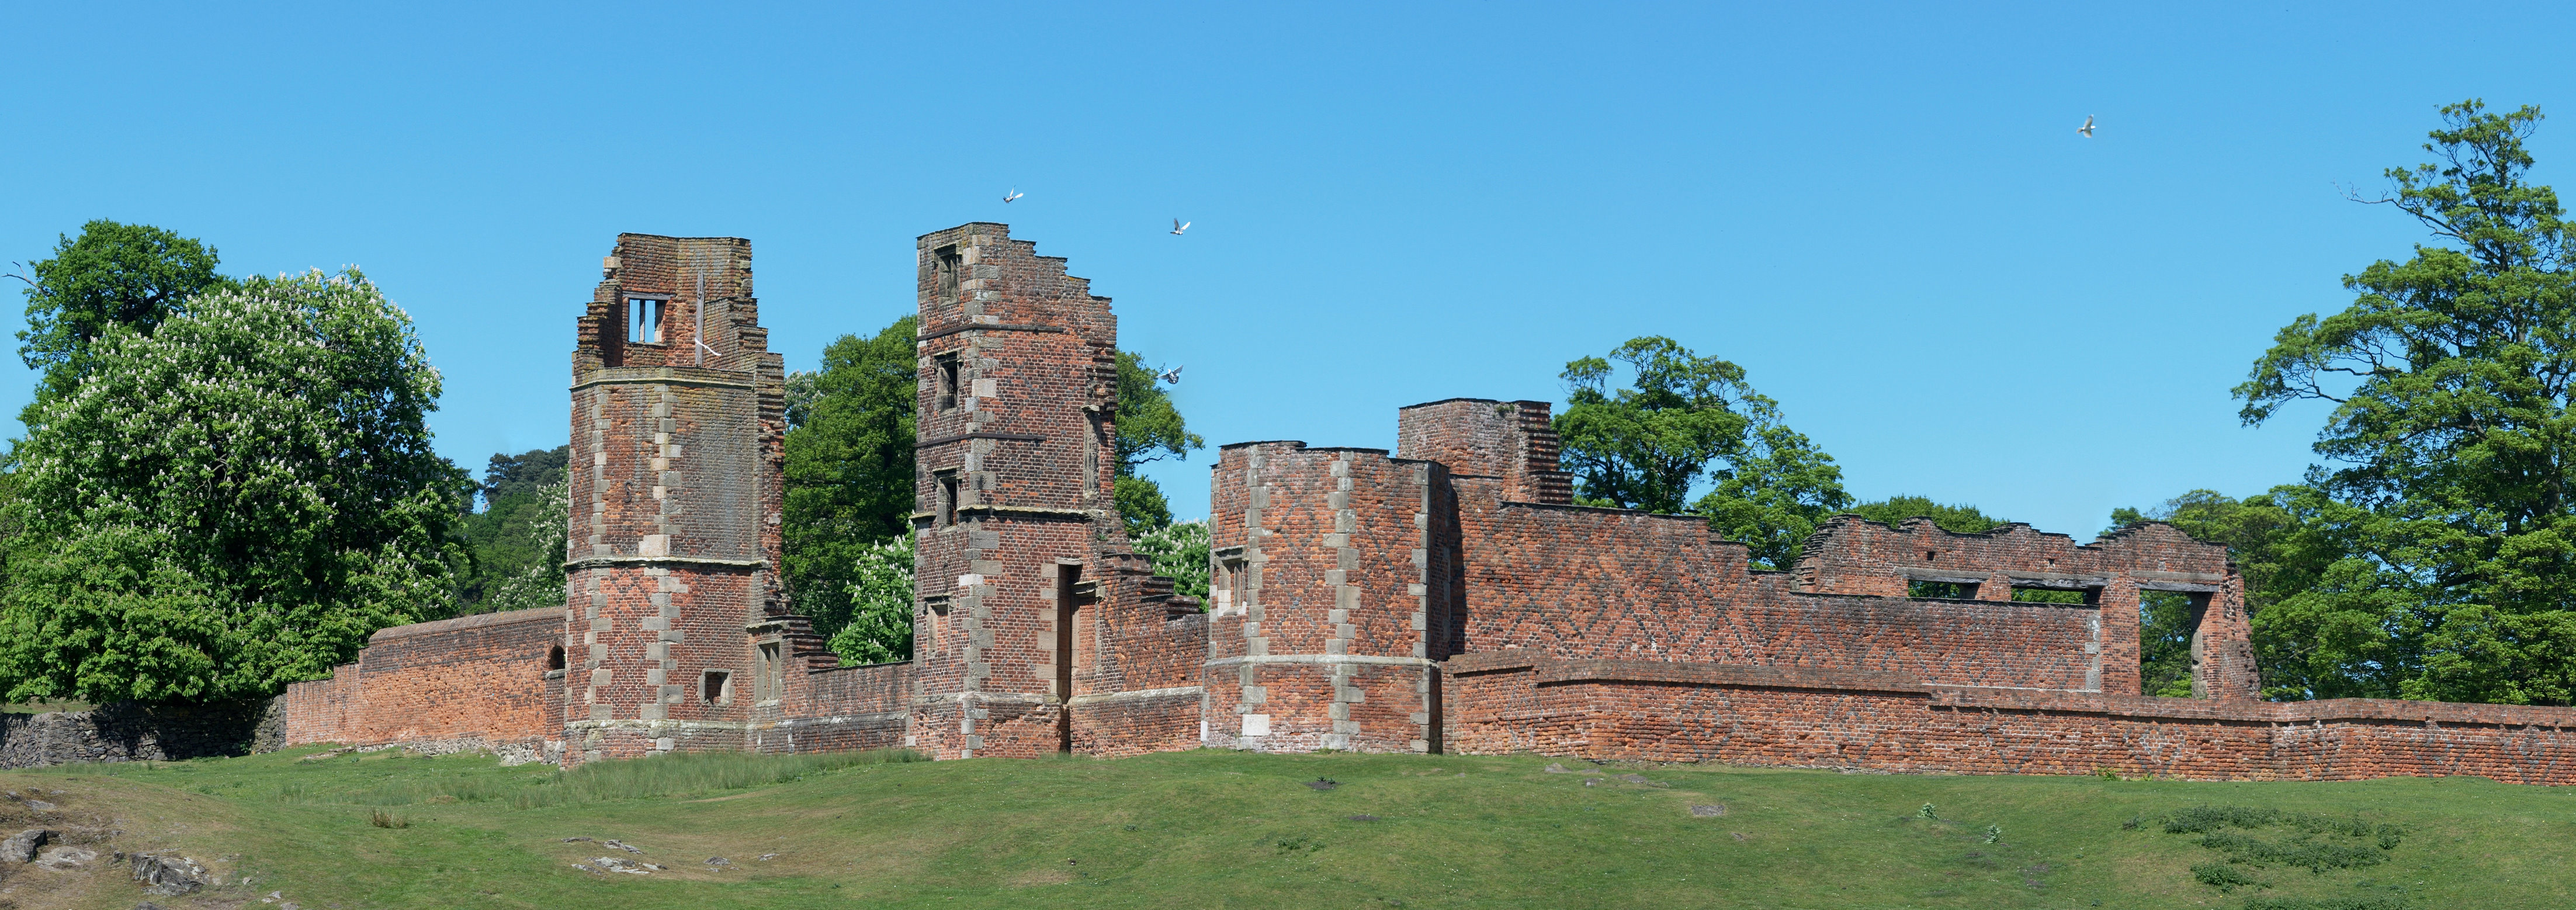 Bradgate House, By NotFromUtrecht - Own work, CC BY-SA 3.0